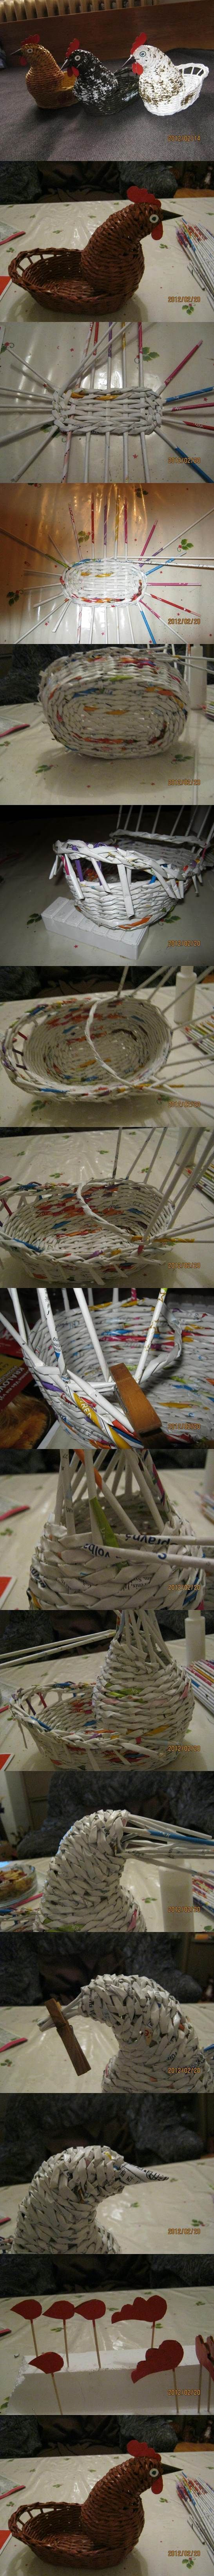 DIY Woven Paper Chicken Easter Basket | iCreativeIdeas.com Follow Us on Facebook --> https://www.facebook.com/icreativeideas: